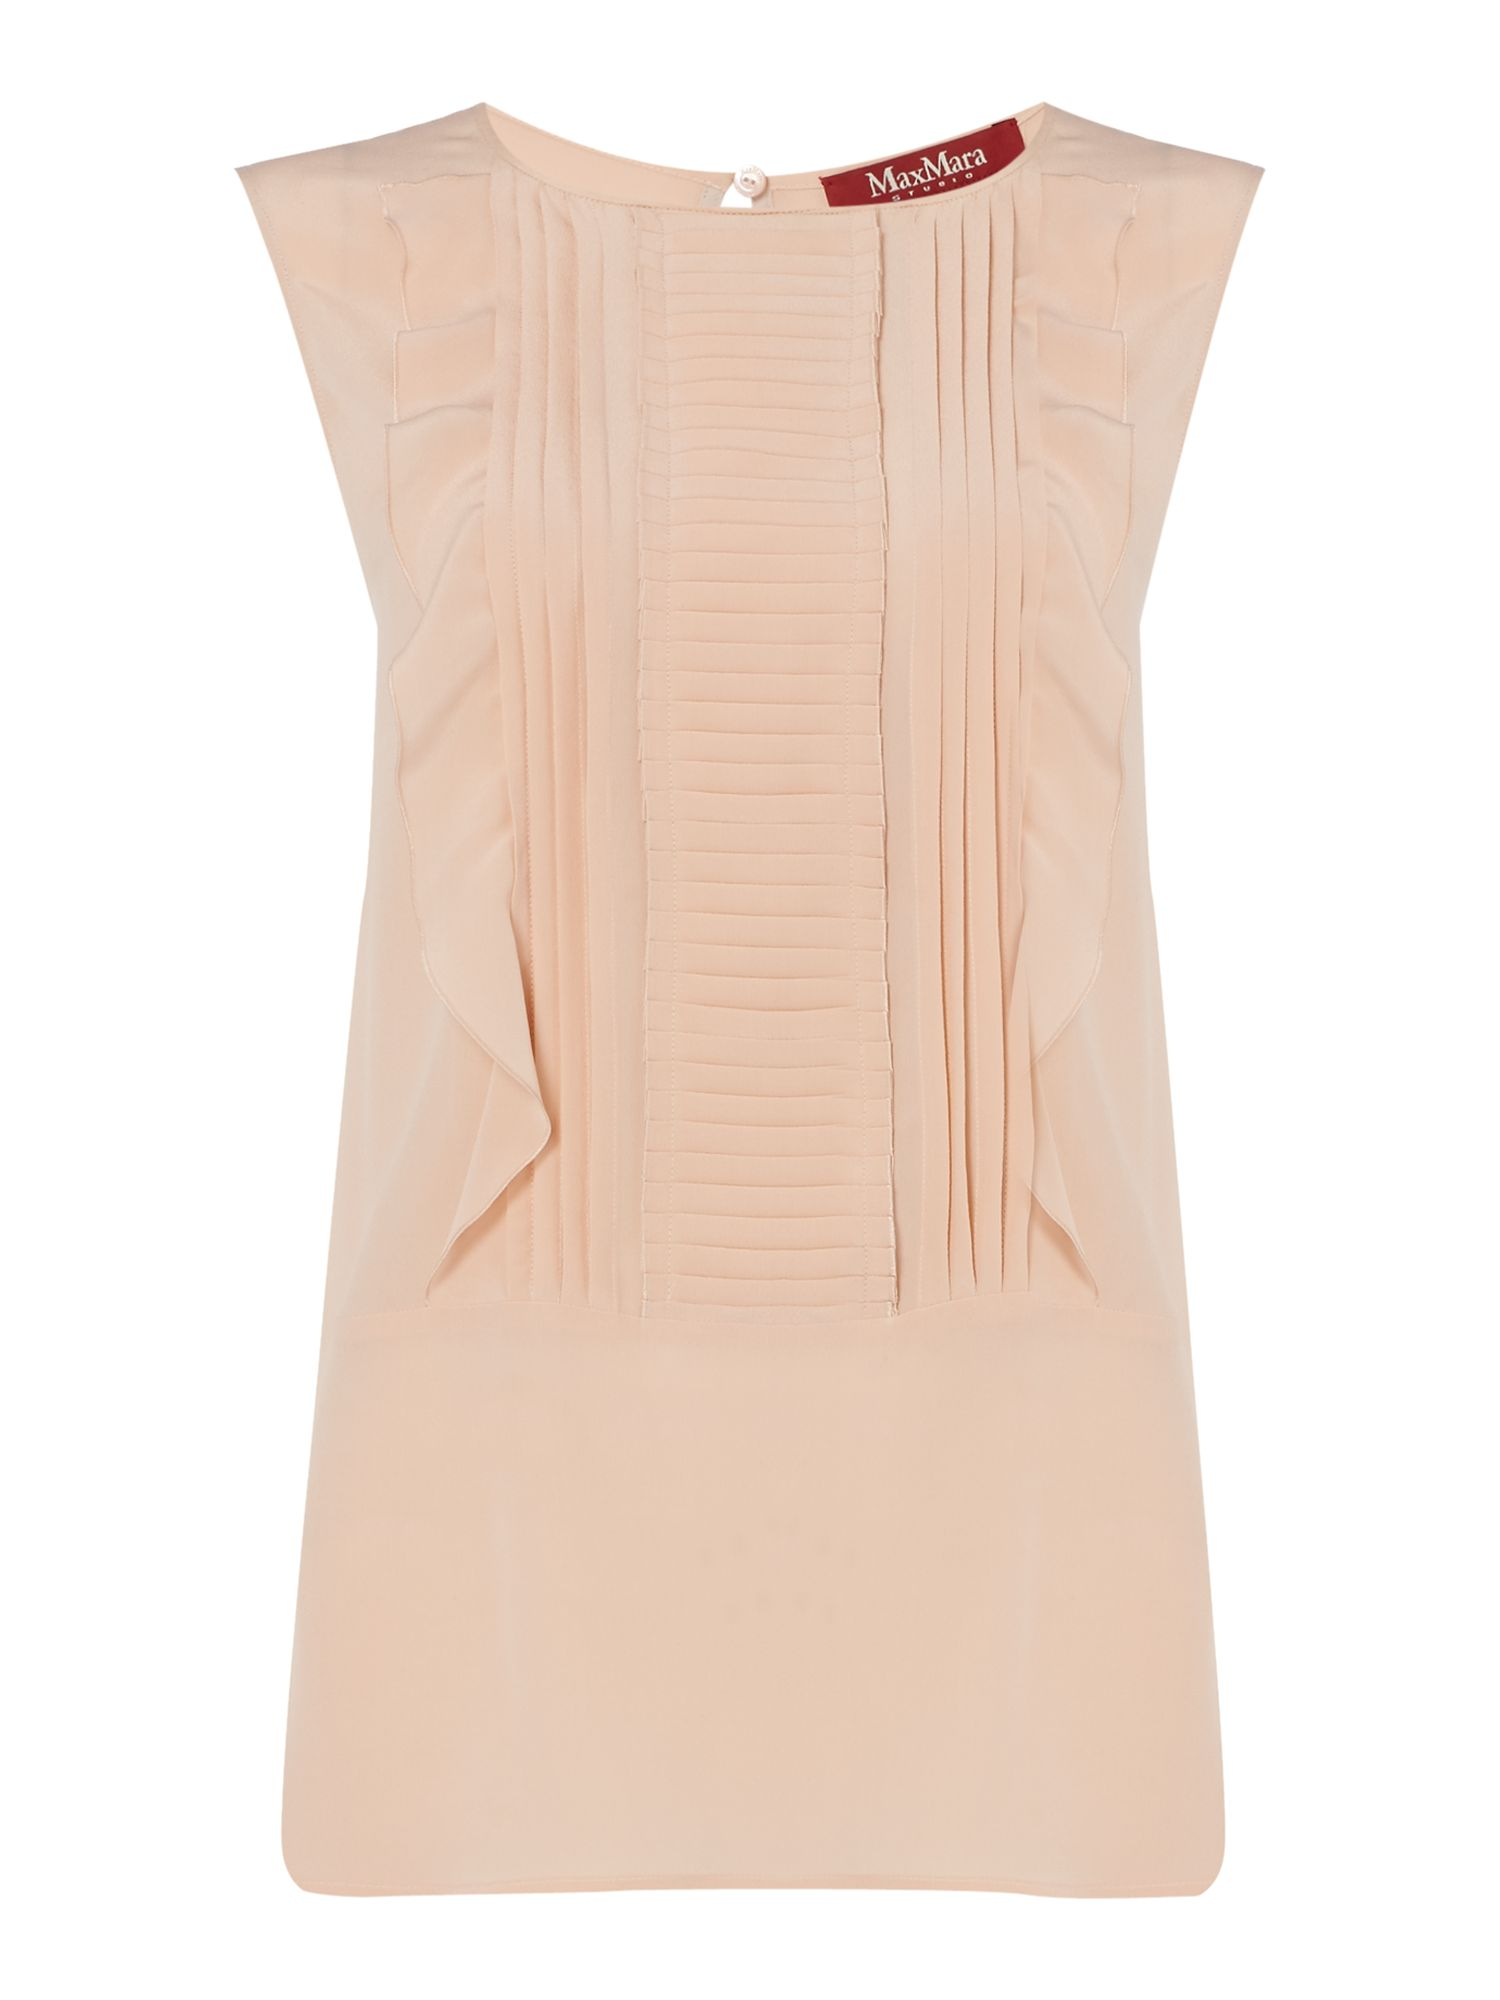 Max Mara Studio Diletta sleeveless ruffle front top, Pink